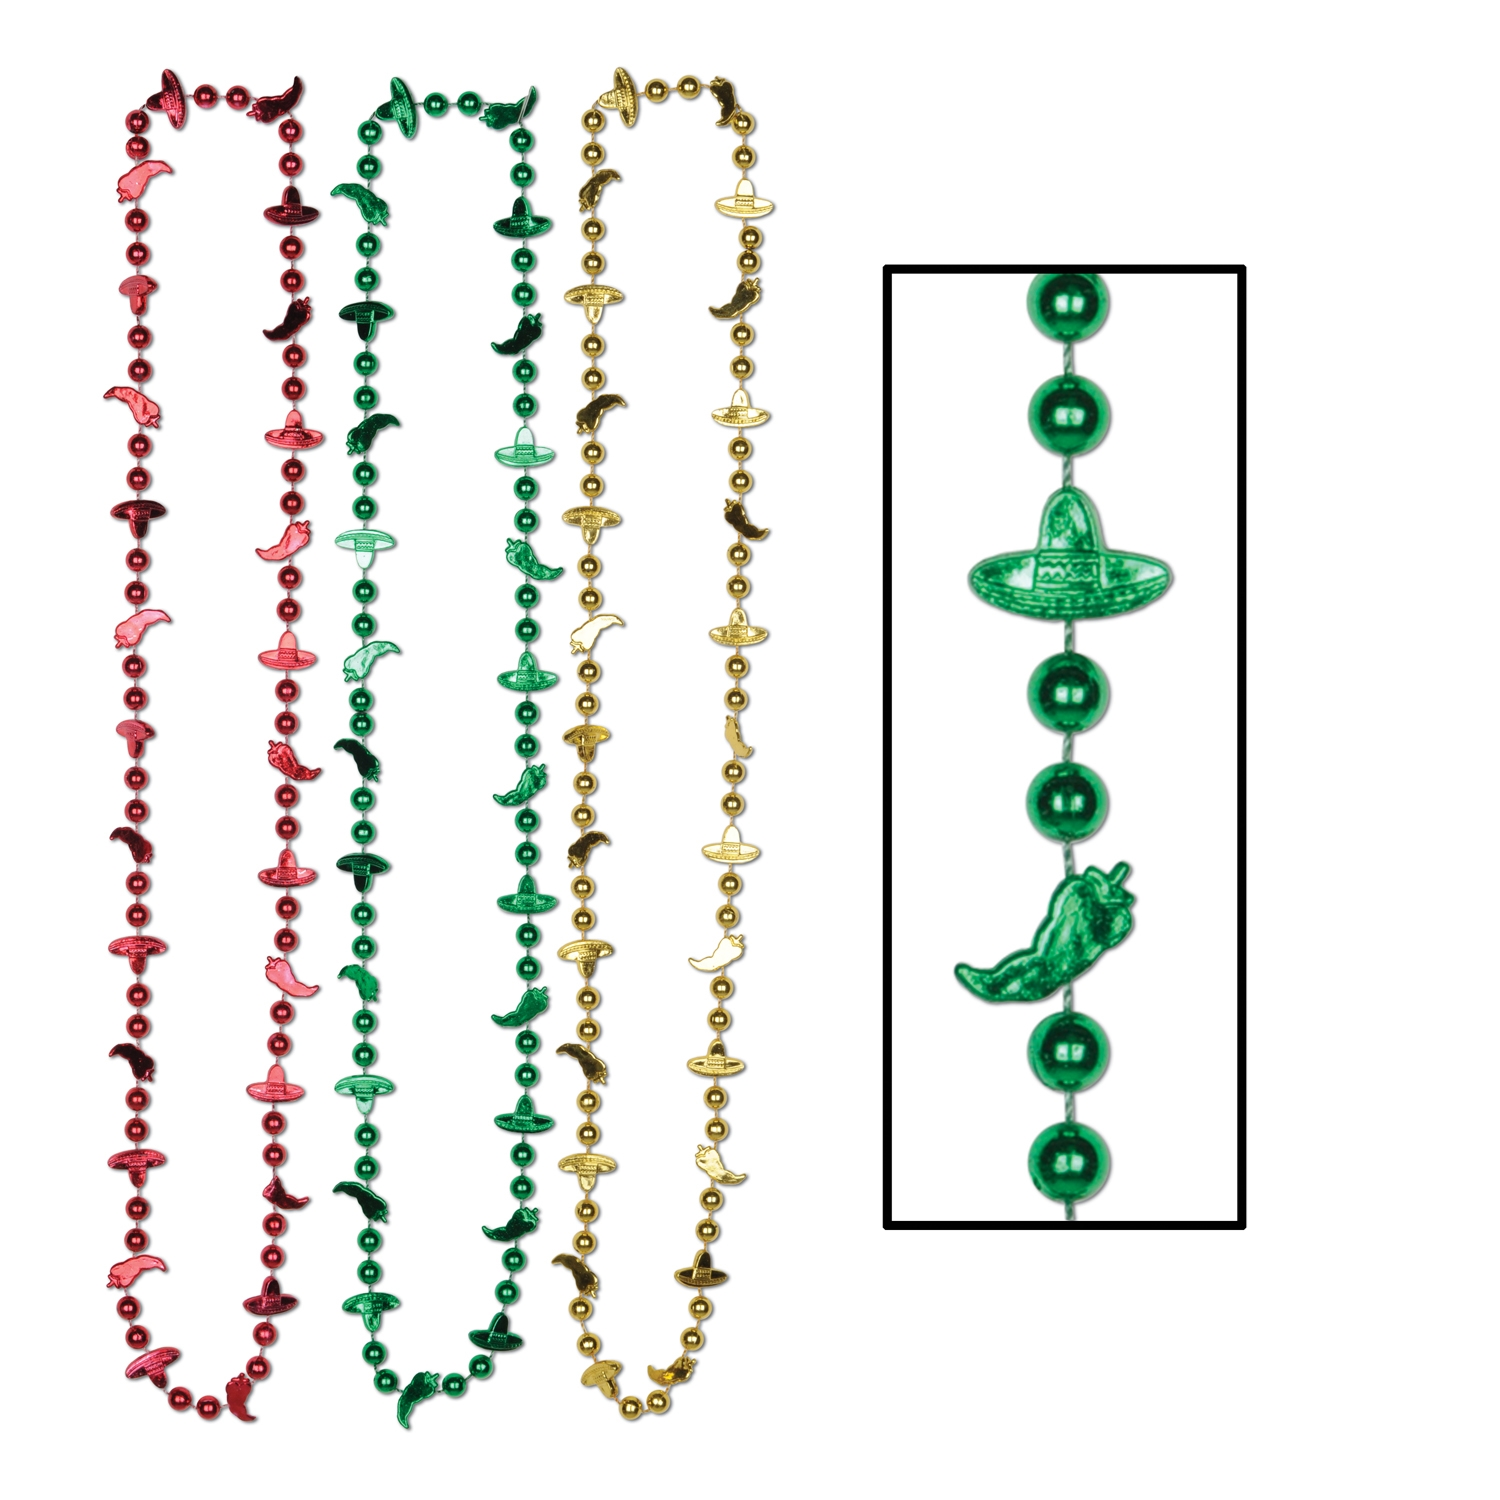 Fiesta Beads (Pack of 72) .